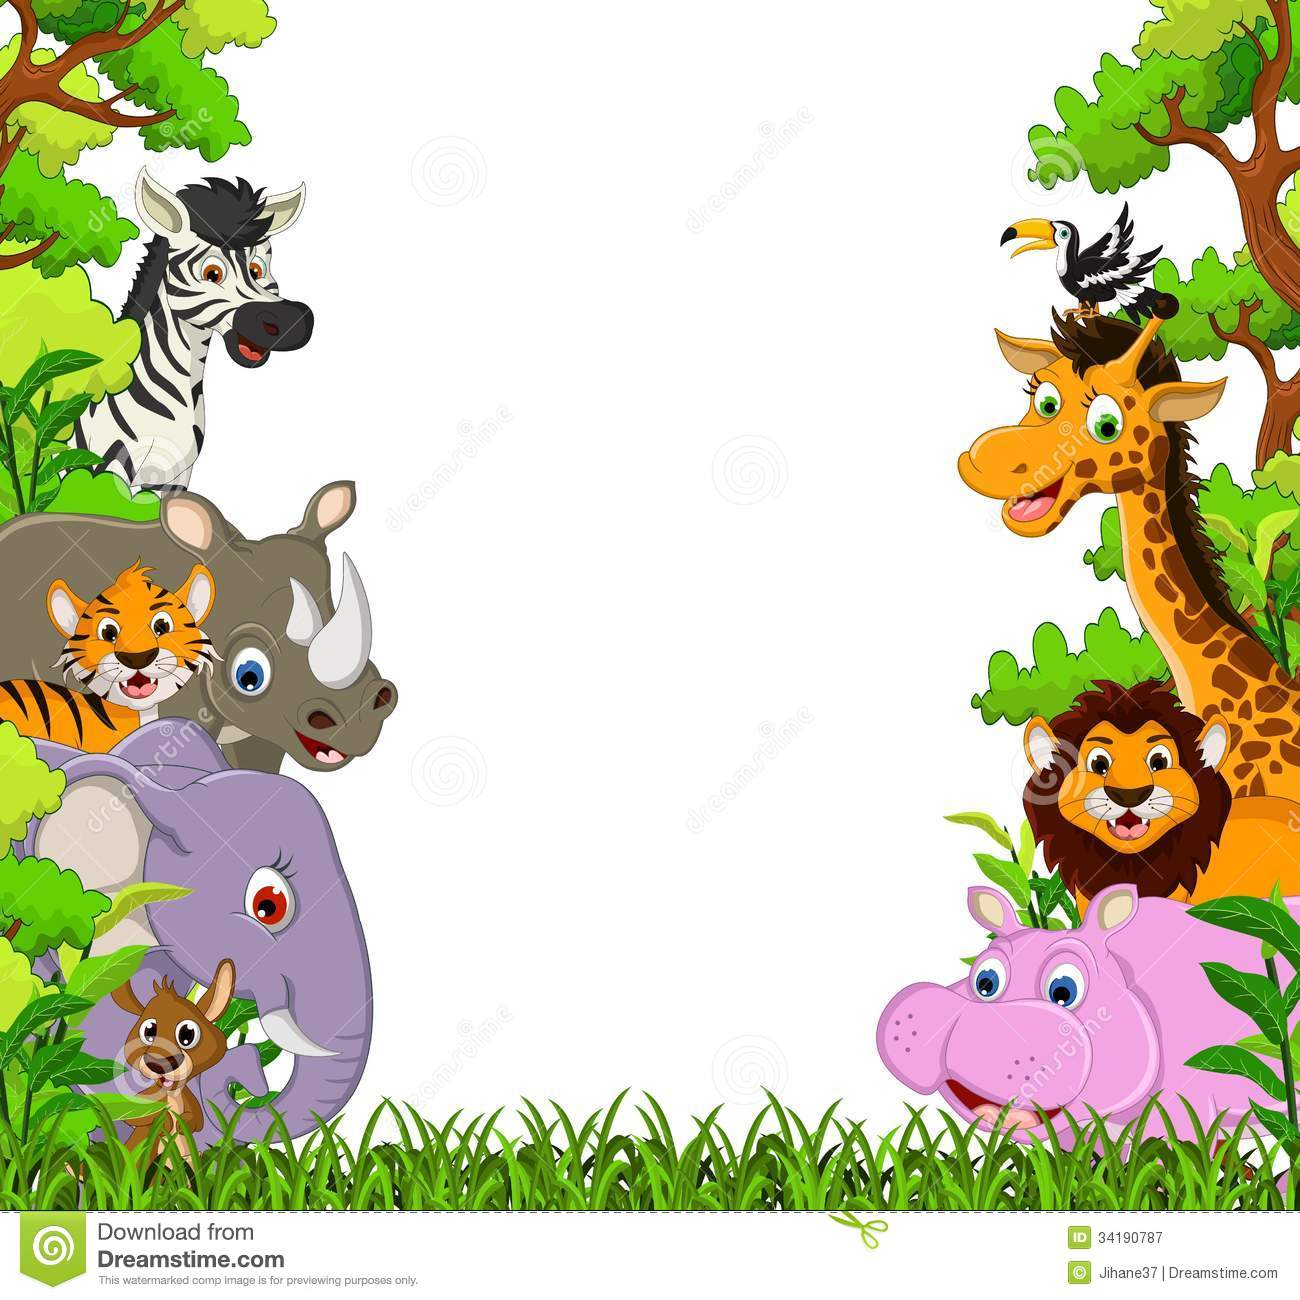 Animals clipart free download clip art free download Cartoon Jungle Animals Clipart | Free download best Cartoon Jungle ... clip art free download